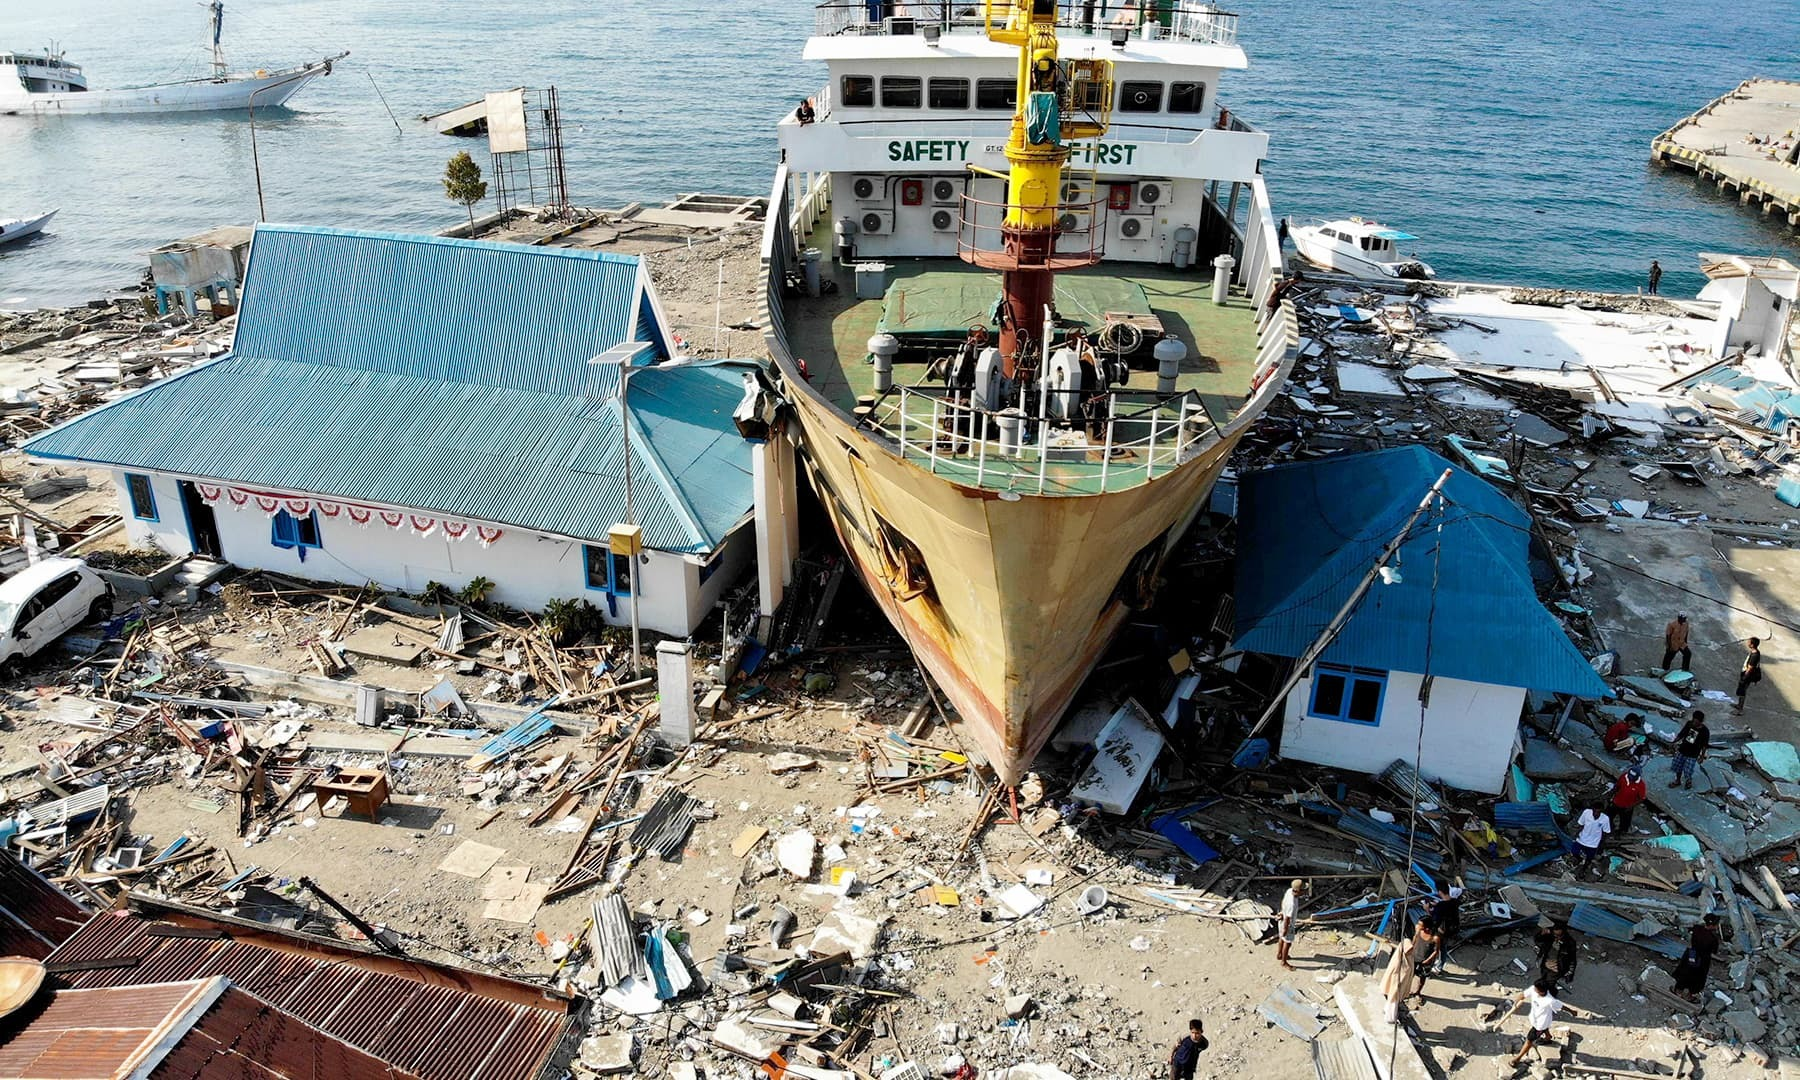 But a country-wide tsunami warning system of buoys connected to seabed sensors has been out of order since 2012 due to vandalism, neglect and a lack of public funds, authorities say. ─ AFP/File